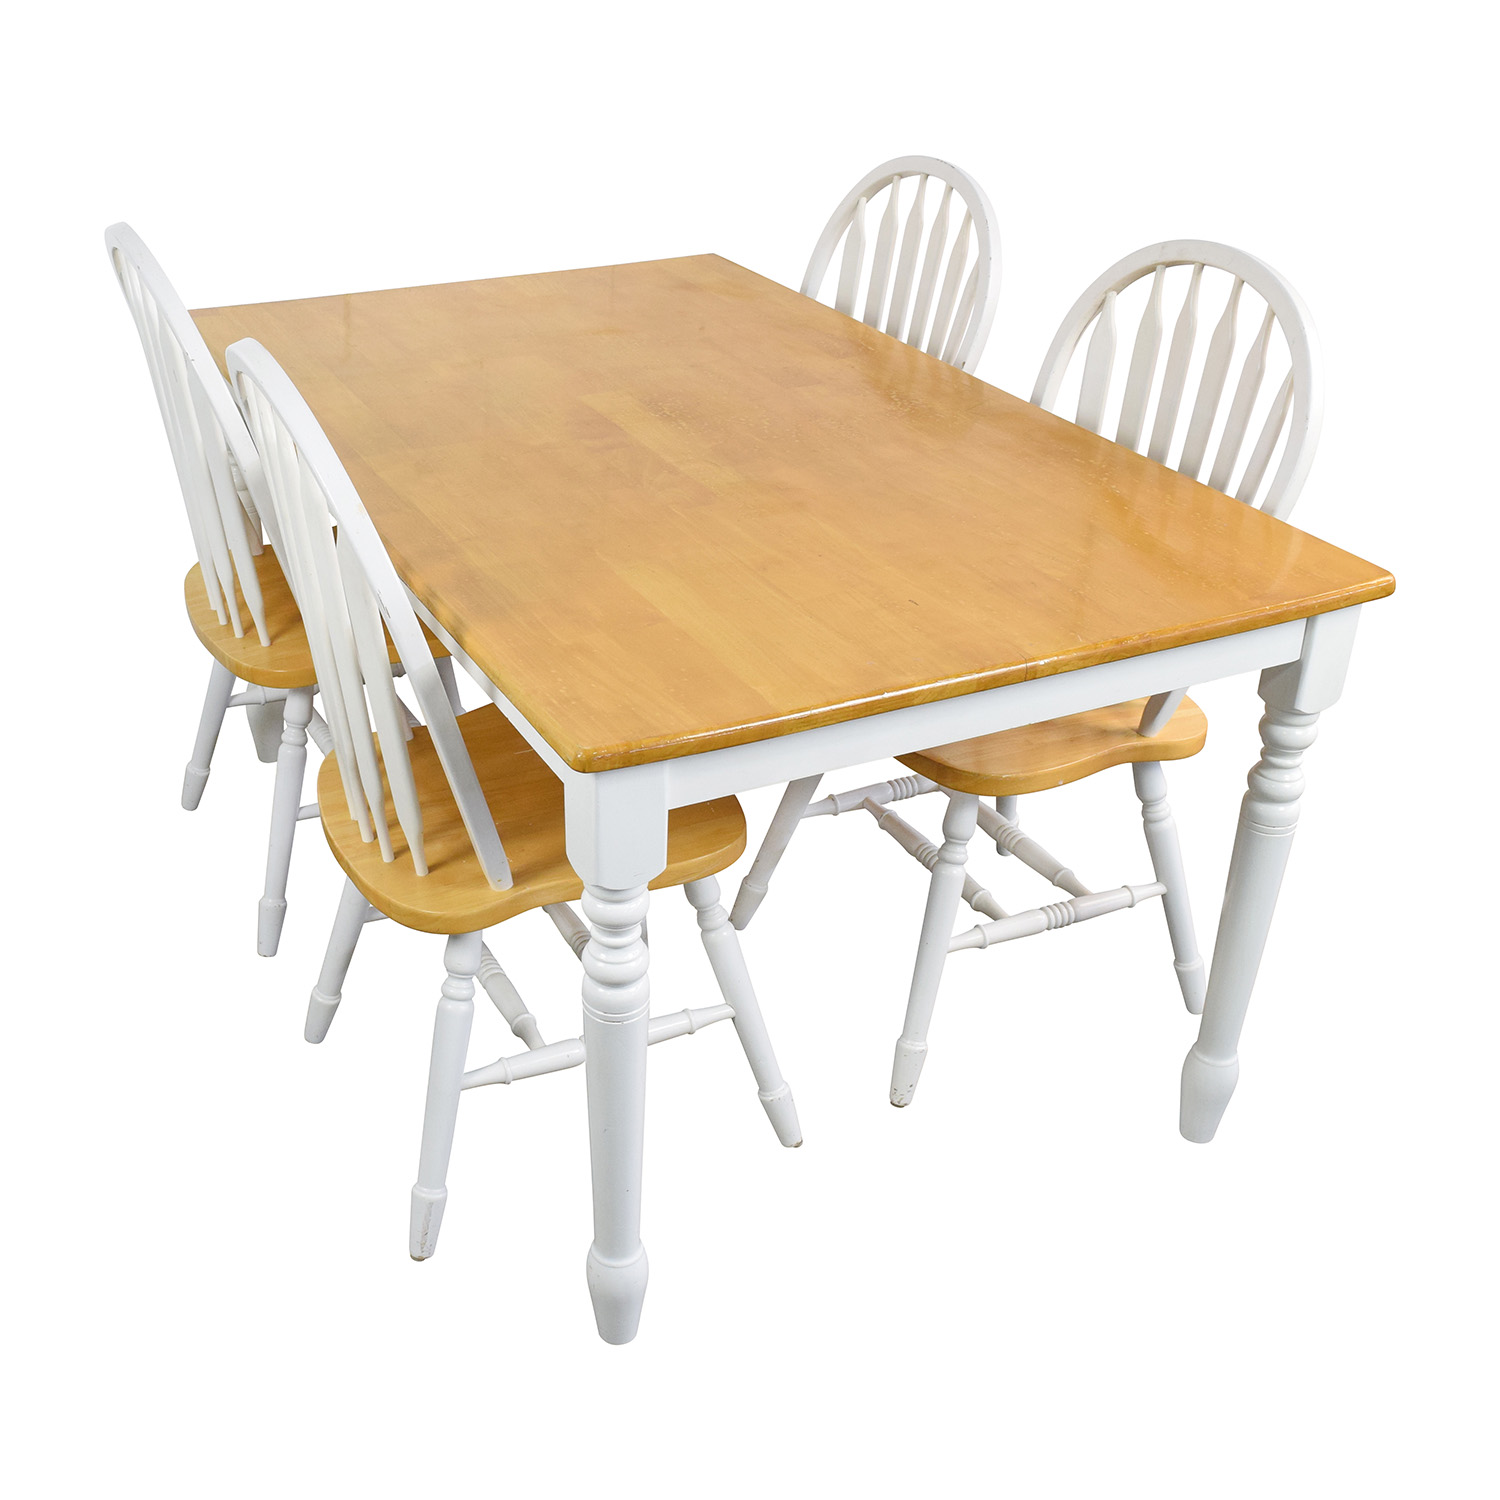 White and Natural Wood Color Dining set second hand